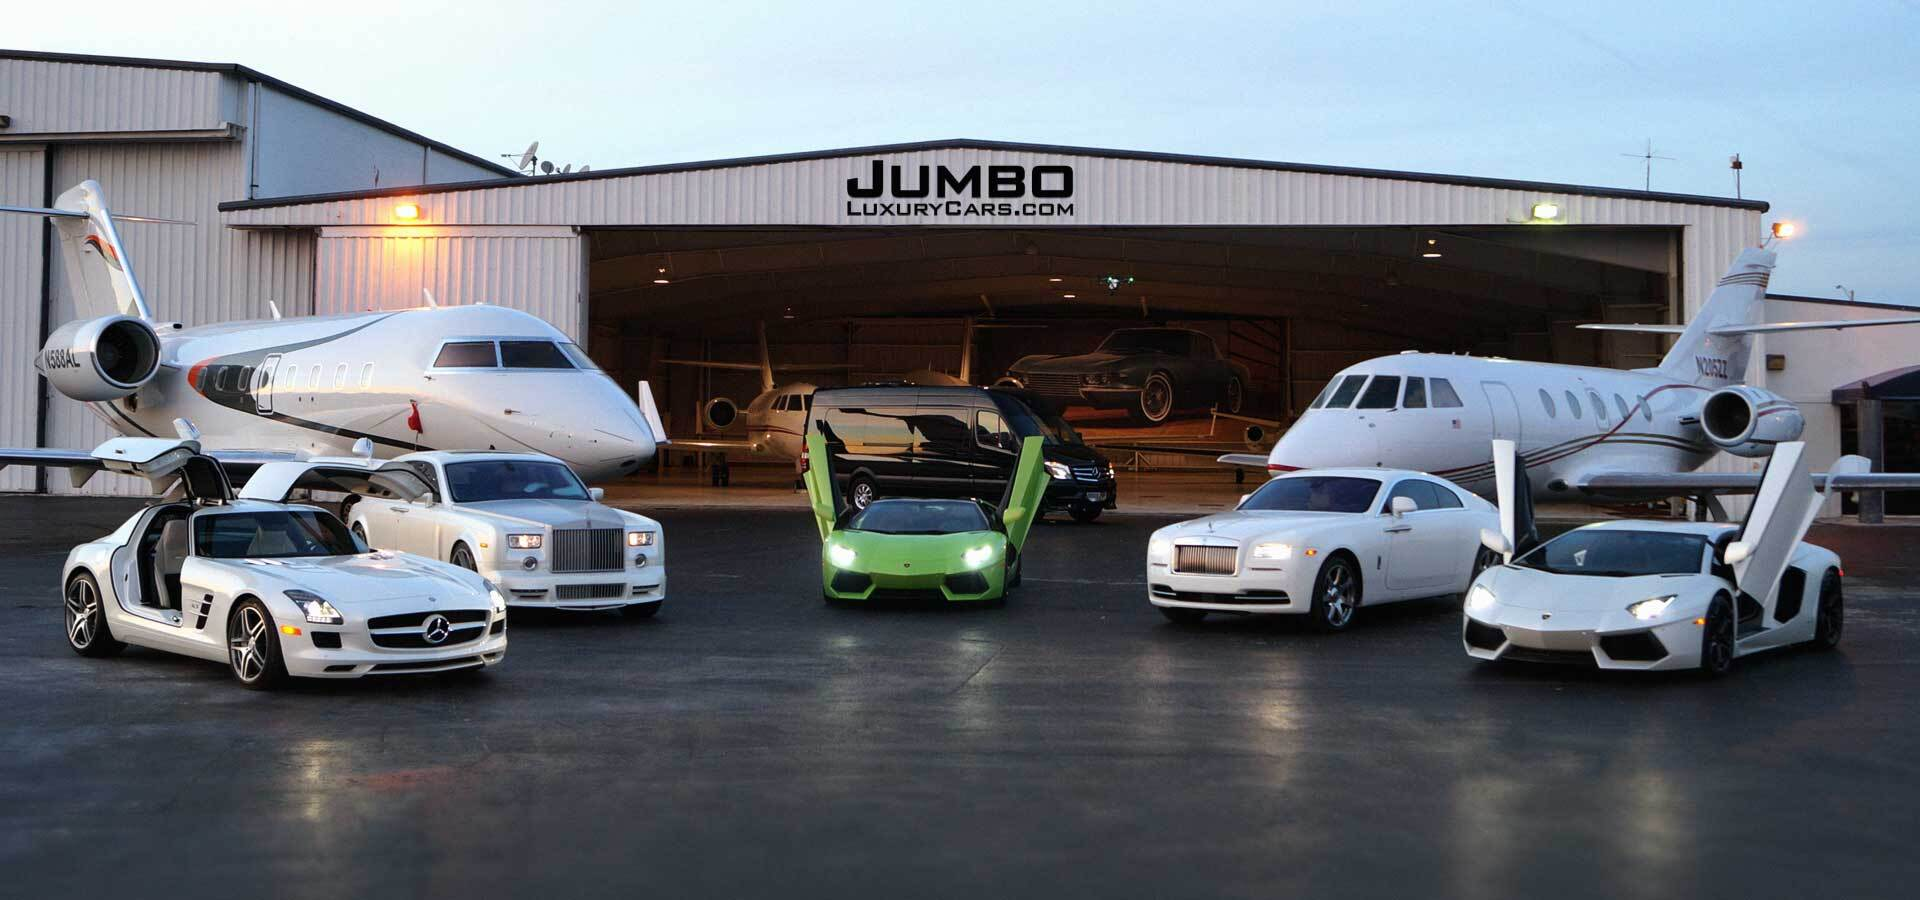 Used Luxury Dealership In Hollywood Fl Used Cars Jumbo